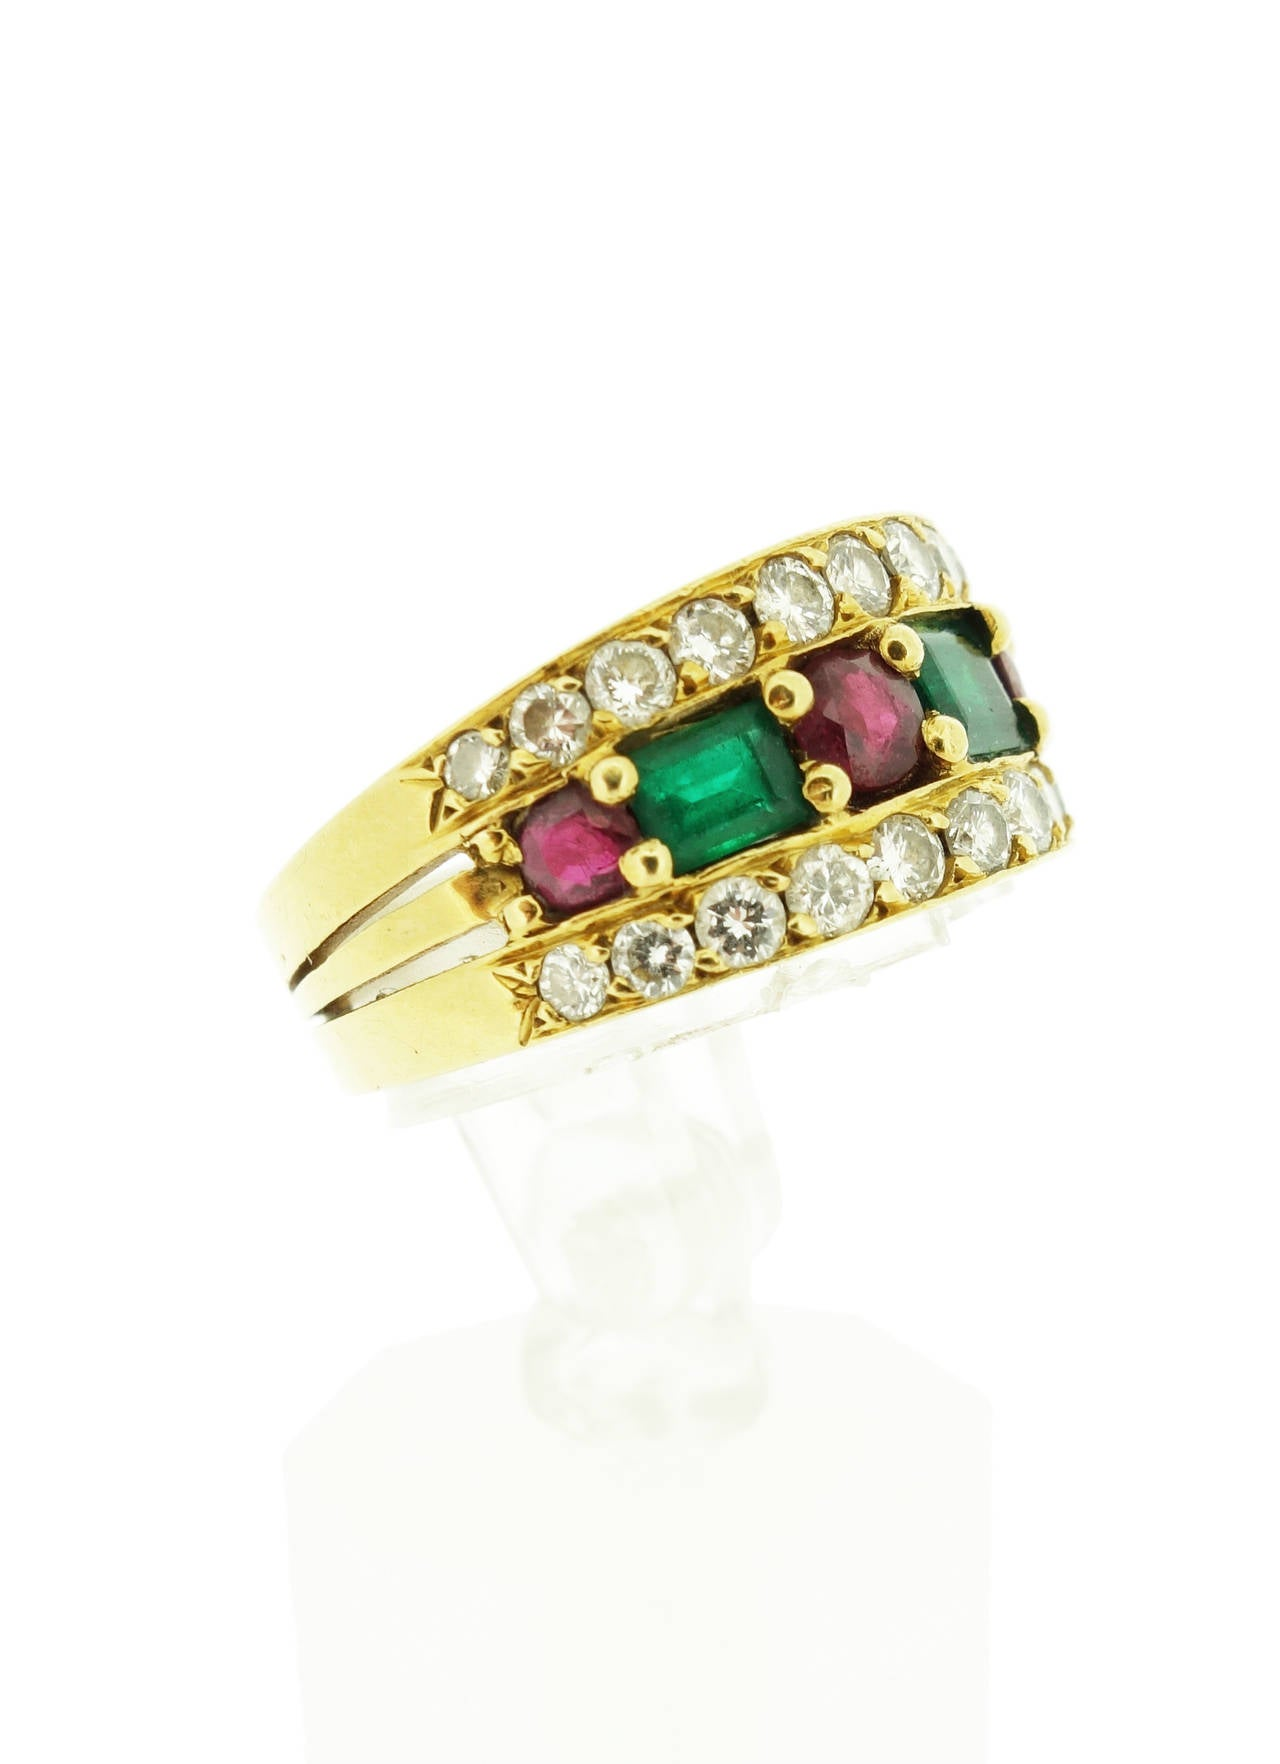 Van Cleef & Arpels Emerald Ruby Diamond Gold Band Ring In Excellent Condition For Sale In Agoura Hills, CA